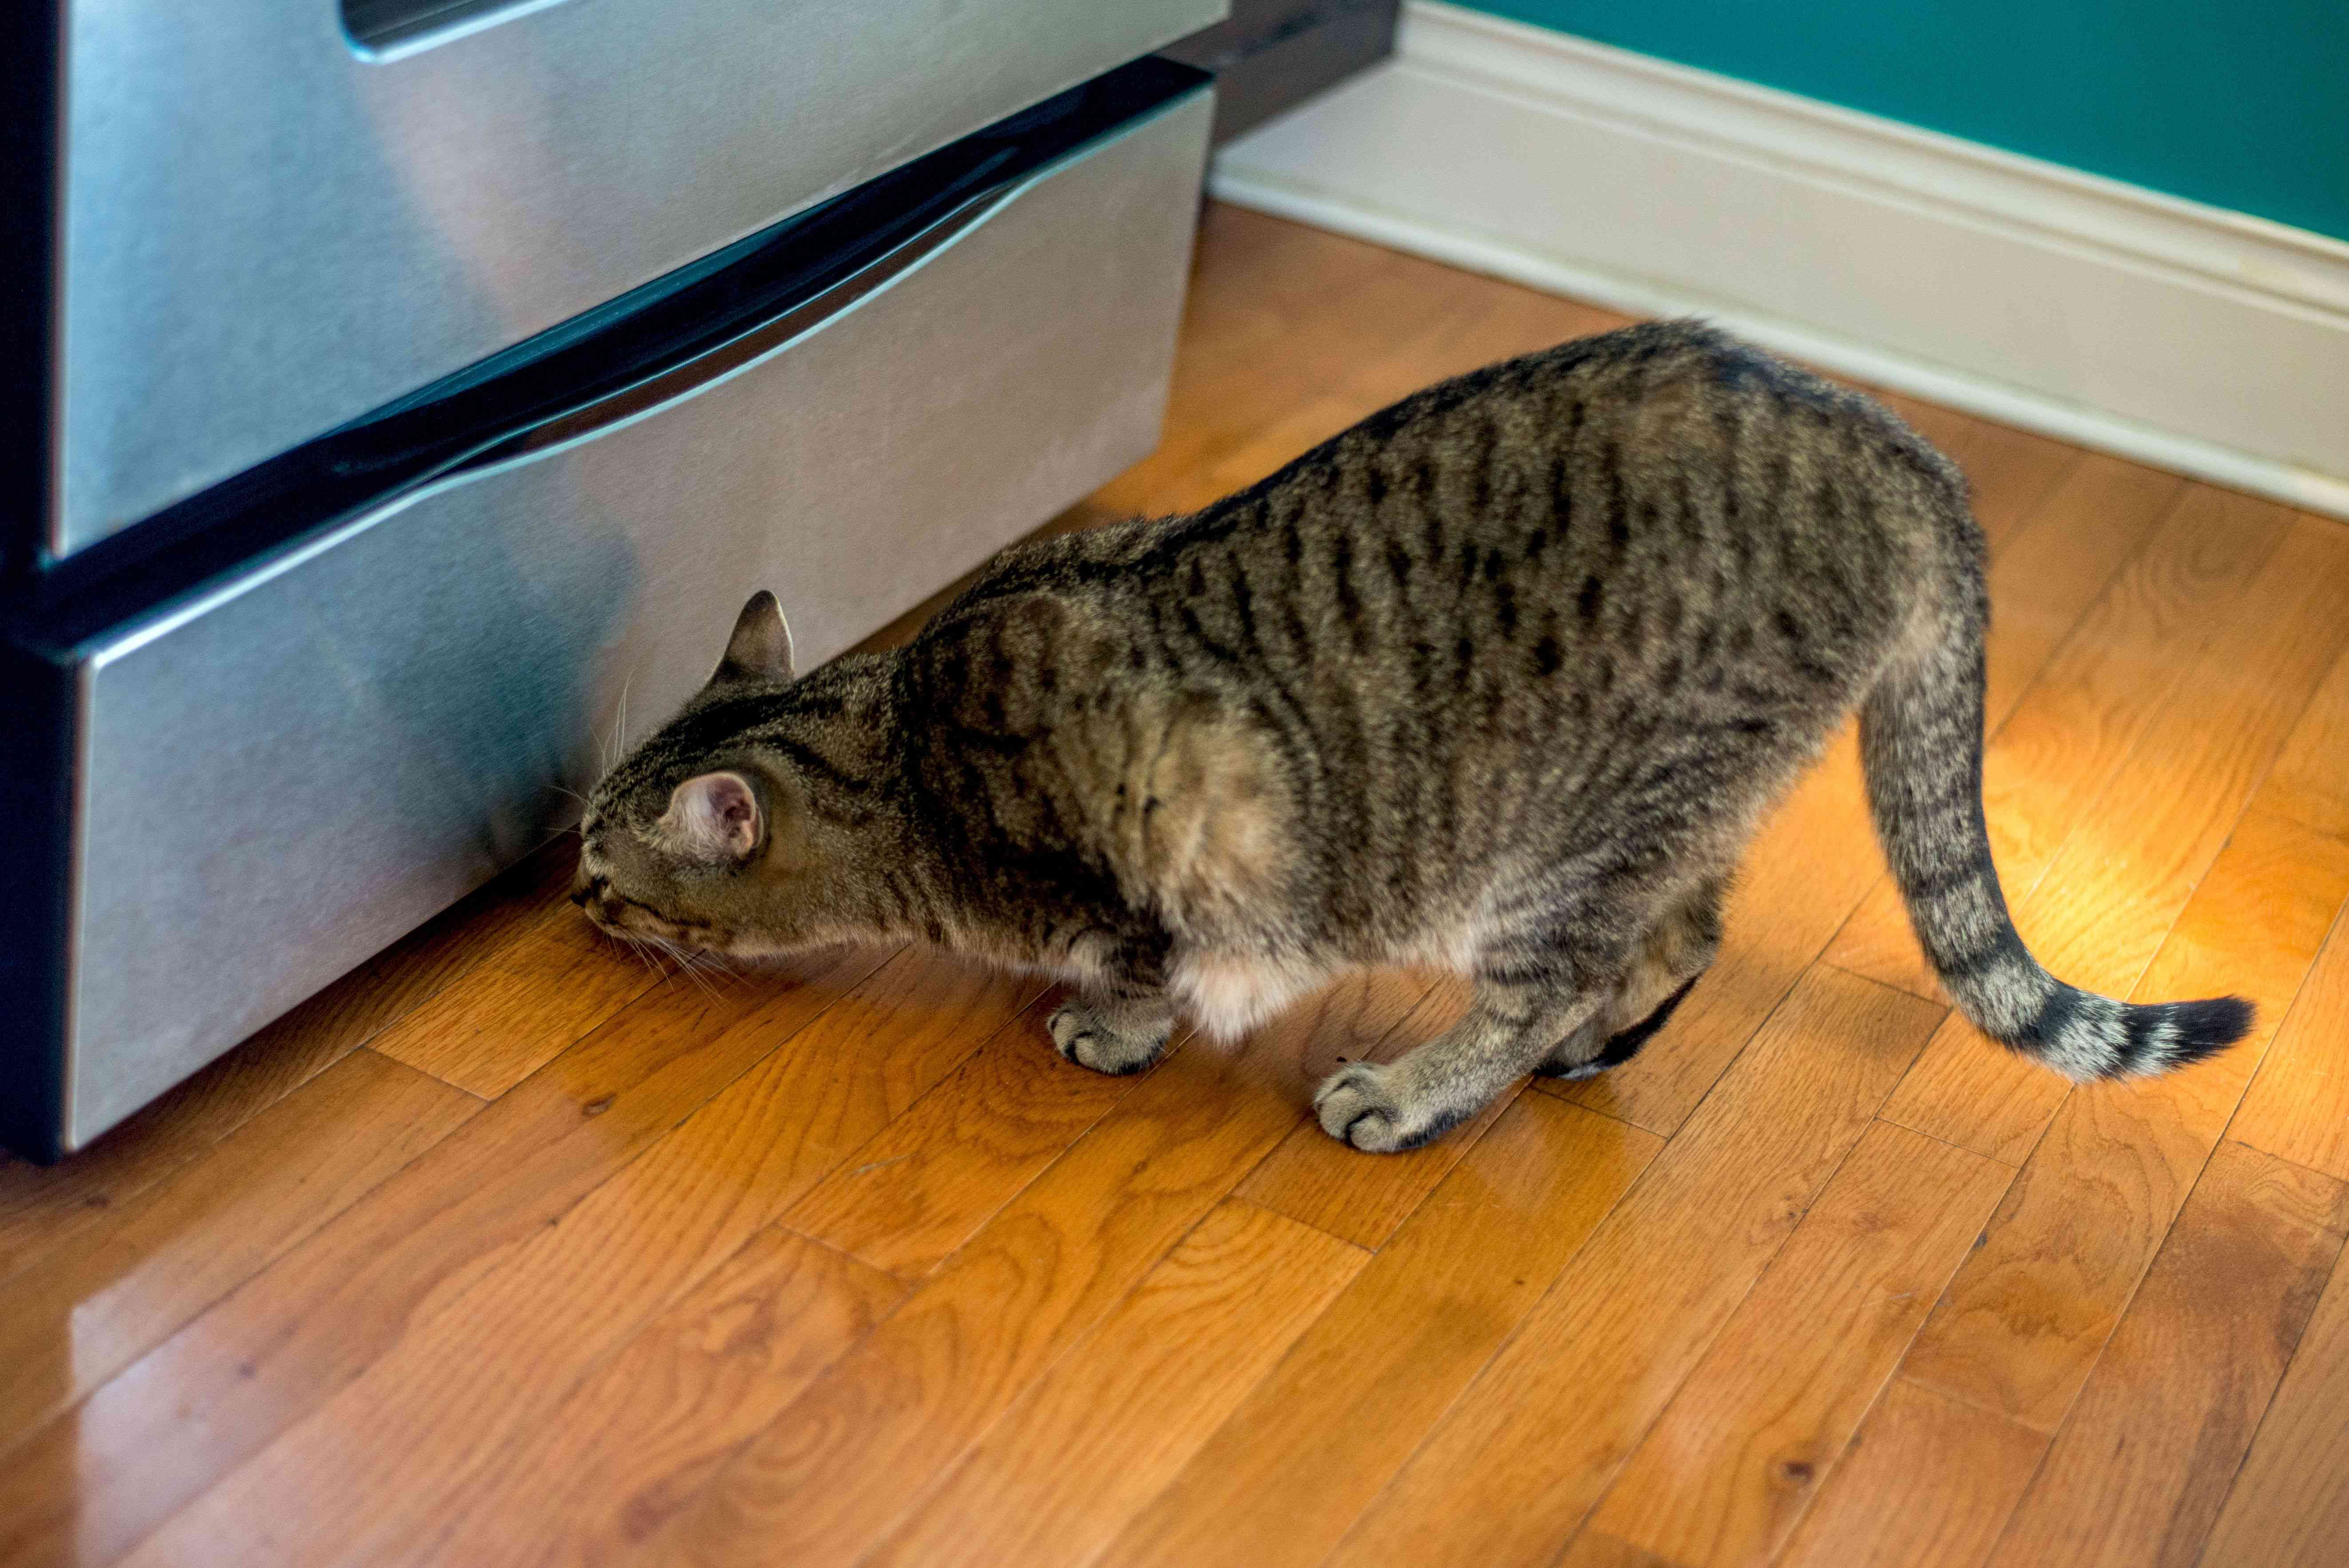 Brown and black spotted cat looking under refrigerator for mice